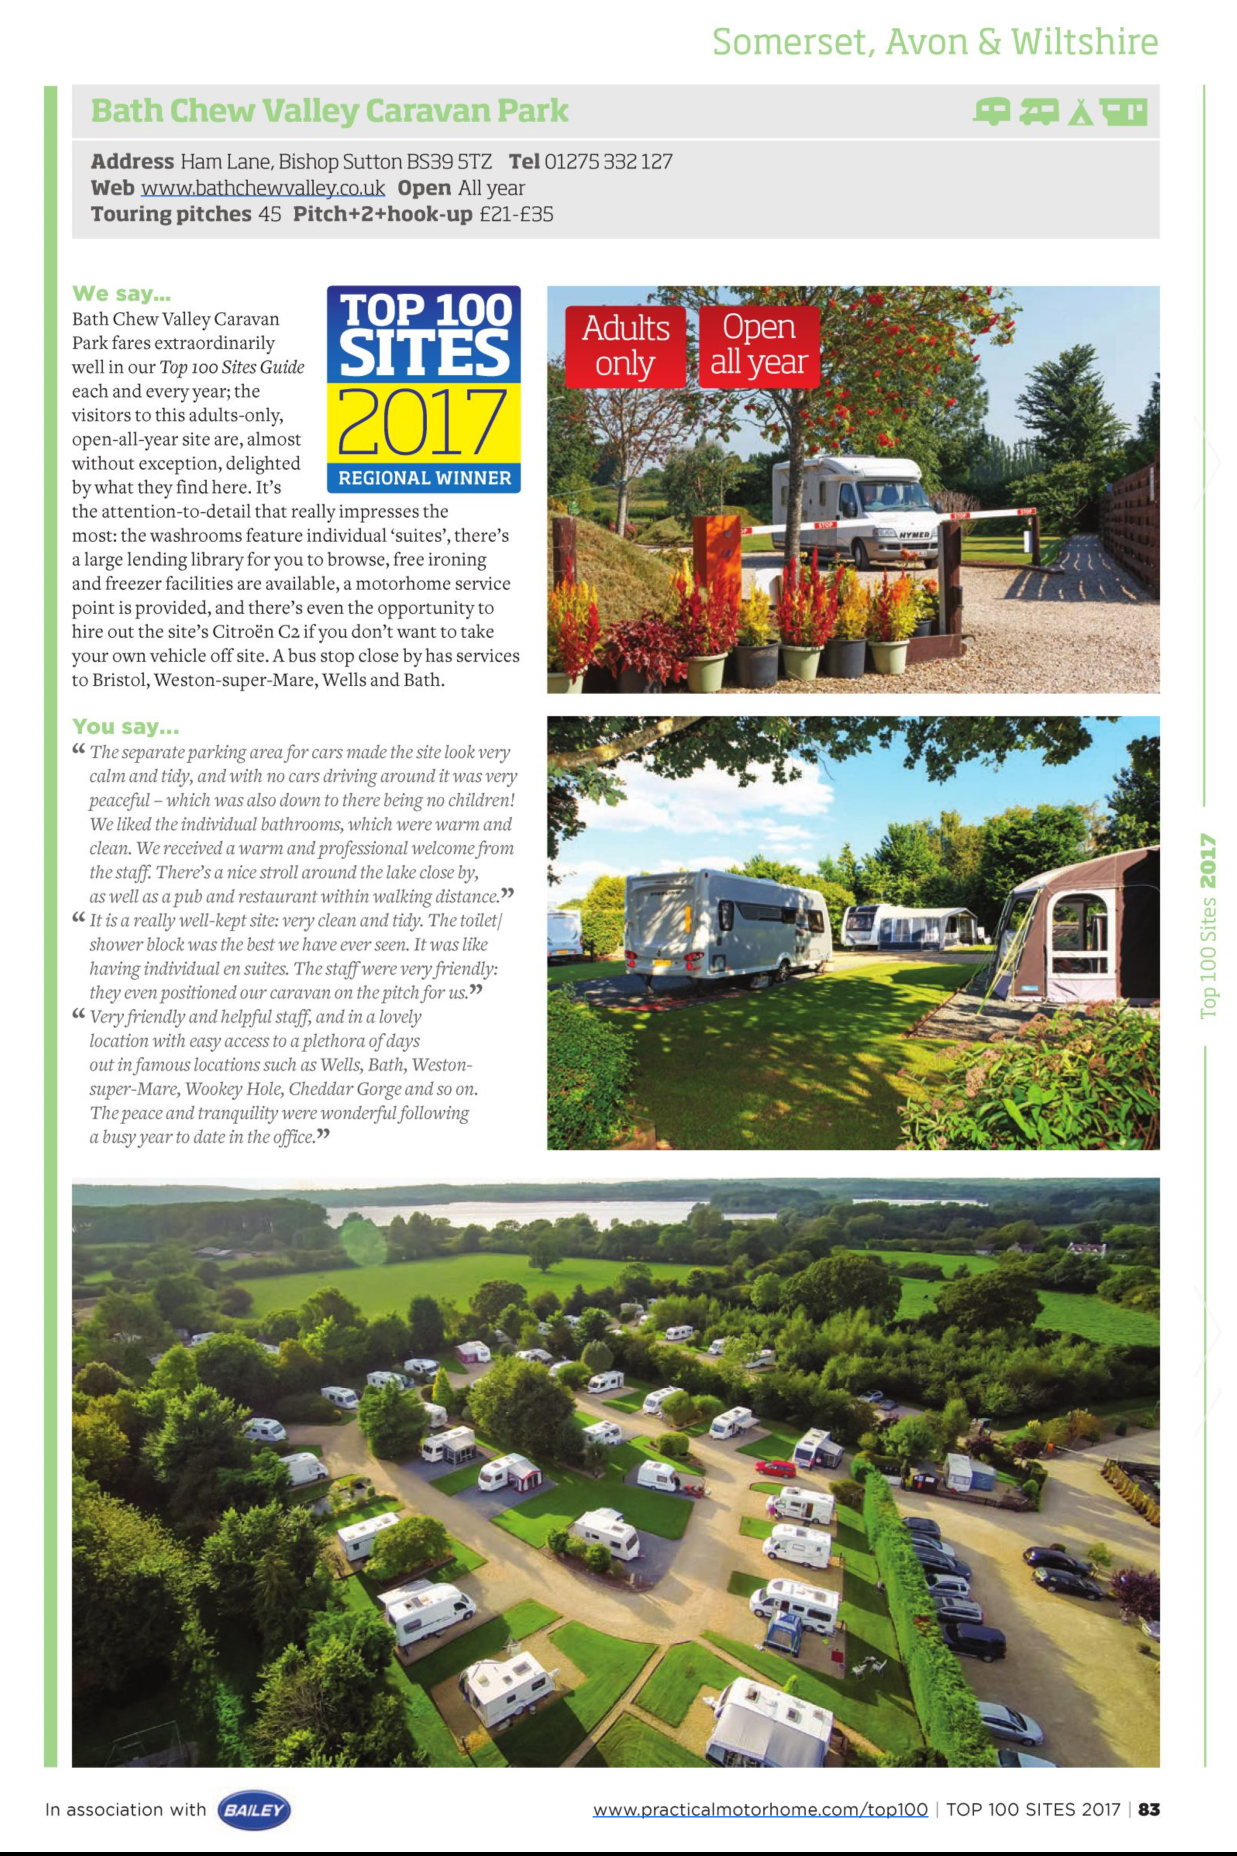 Download the Top 100 Sites Review for Bath Chew Caravan Park